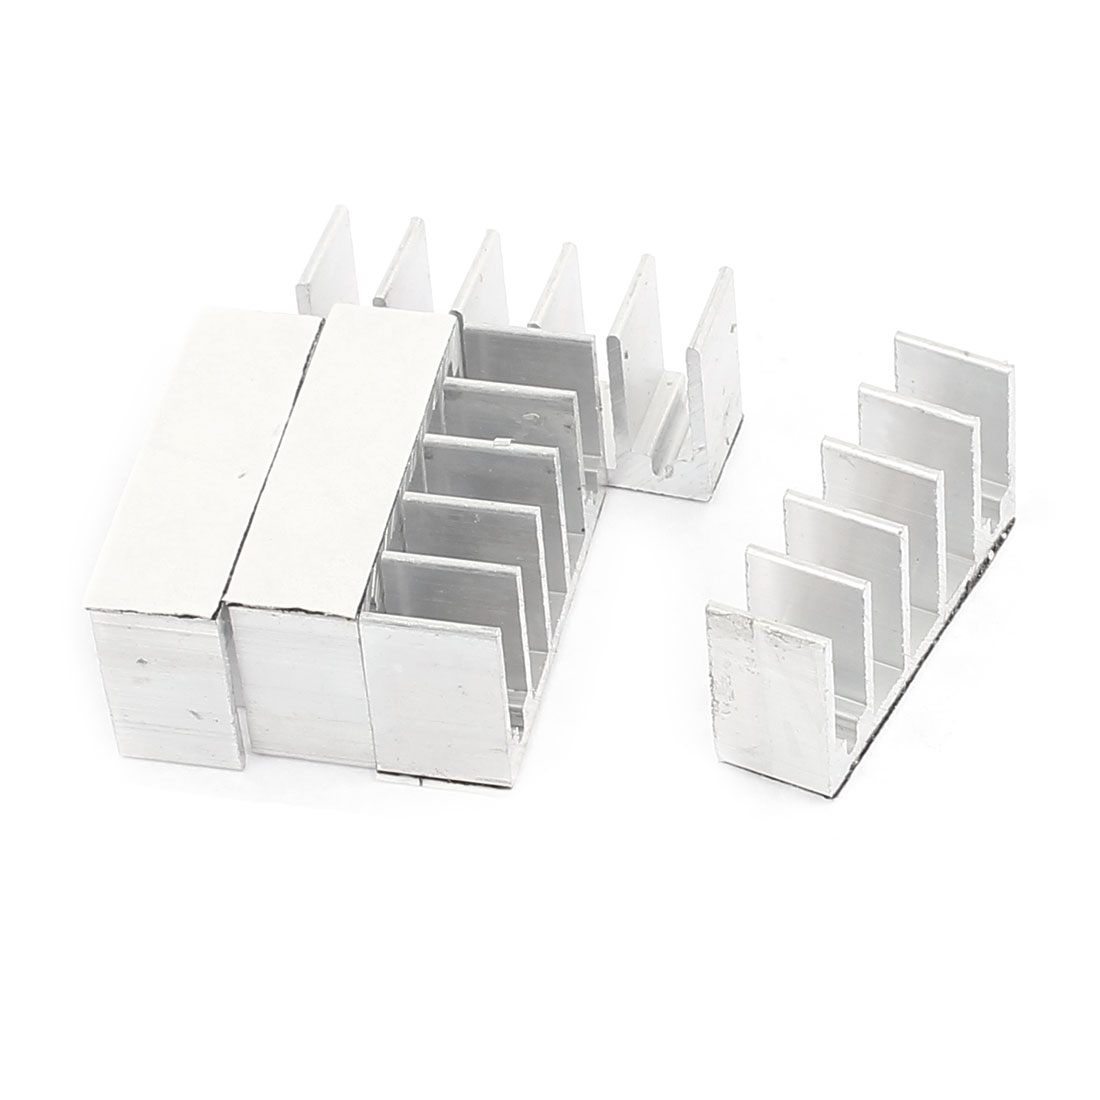 5 Pcs Aluminium Heatsink Heat Sink Cooling Fin 8 x 30 x 15mm for Chipset IC CPU